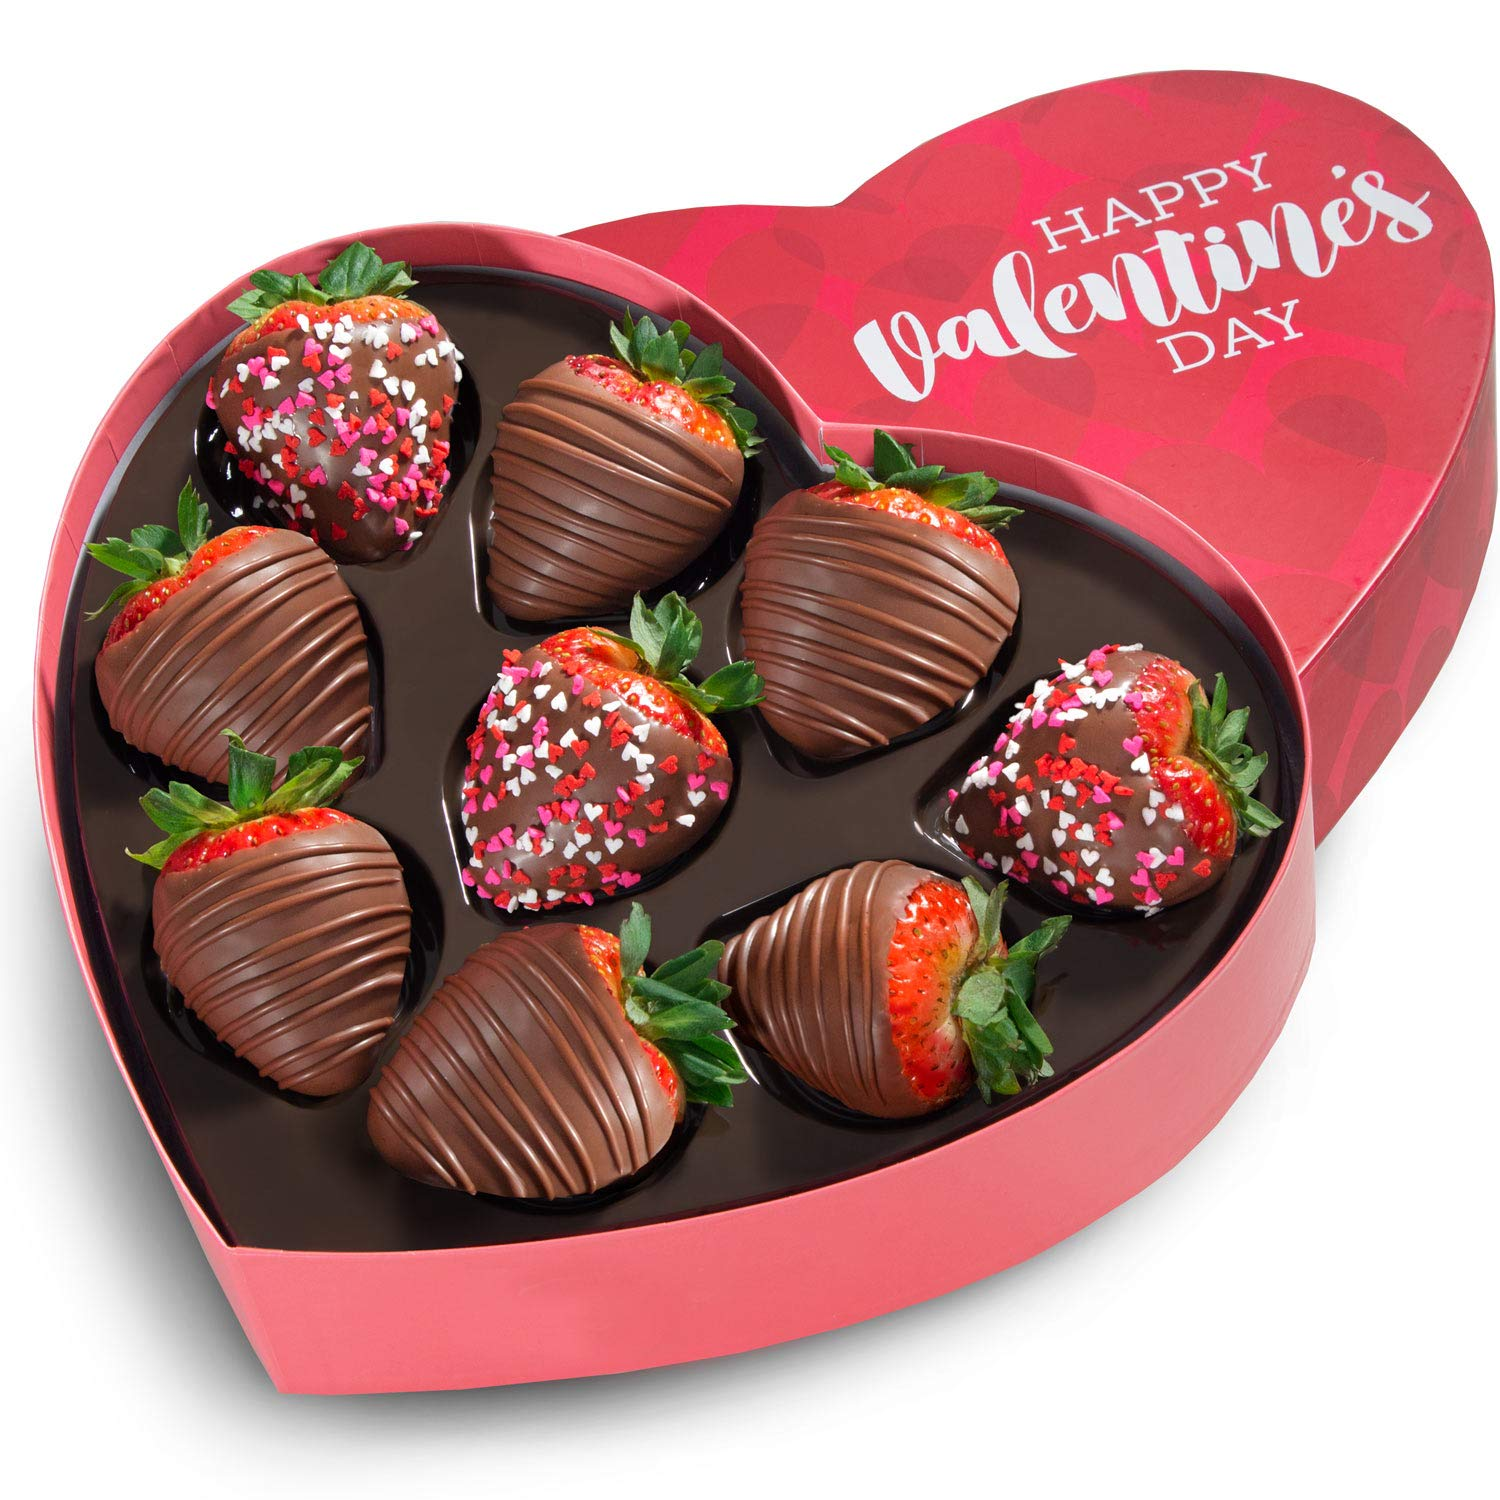 Amazon Com 12 Count Merry Christmas Chocolate Covered Strawberries Grocery Gourmet Food